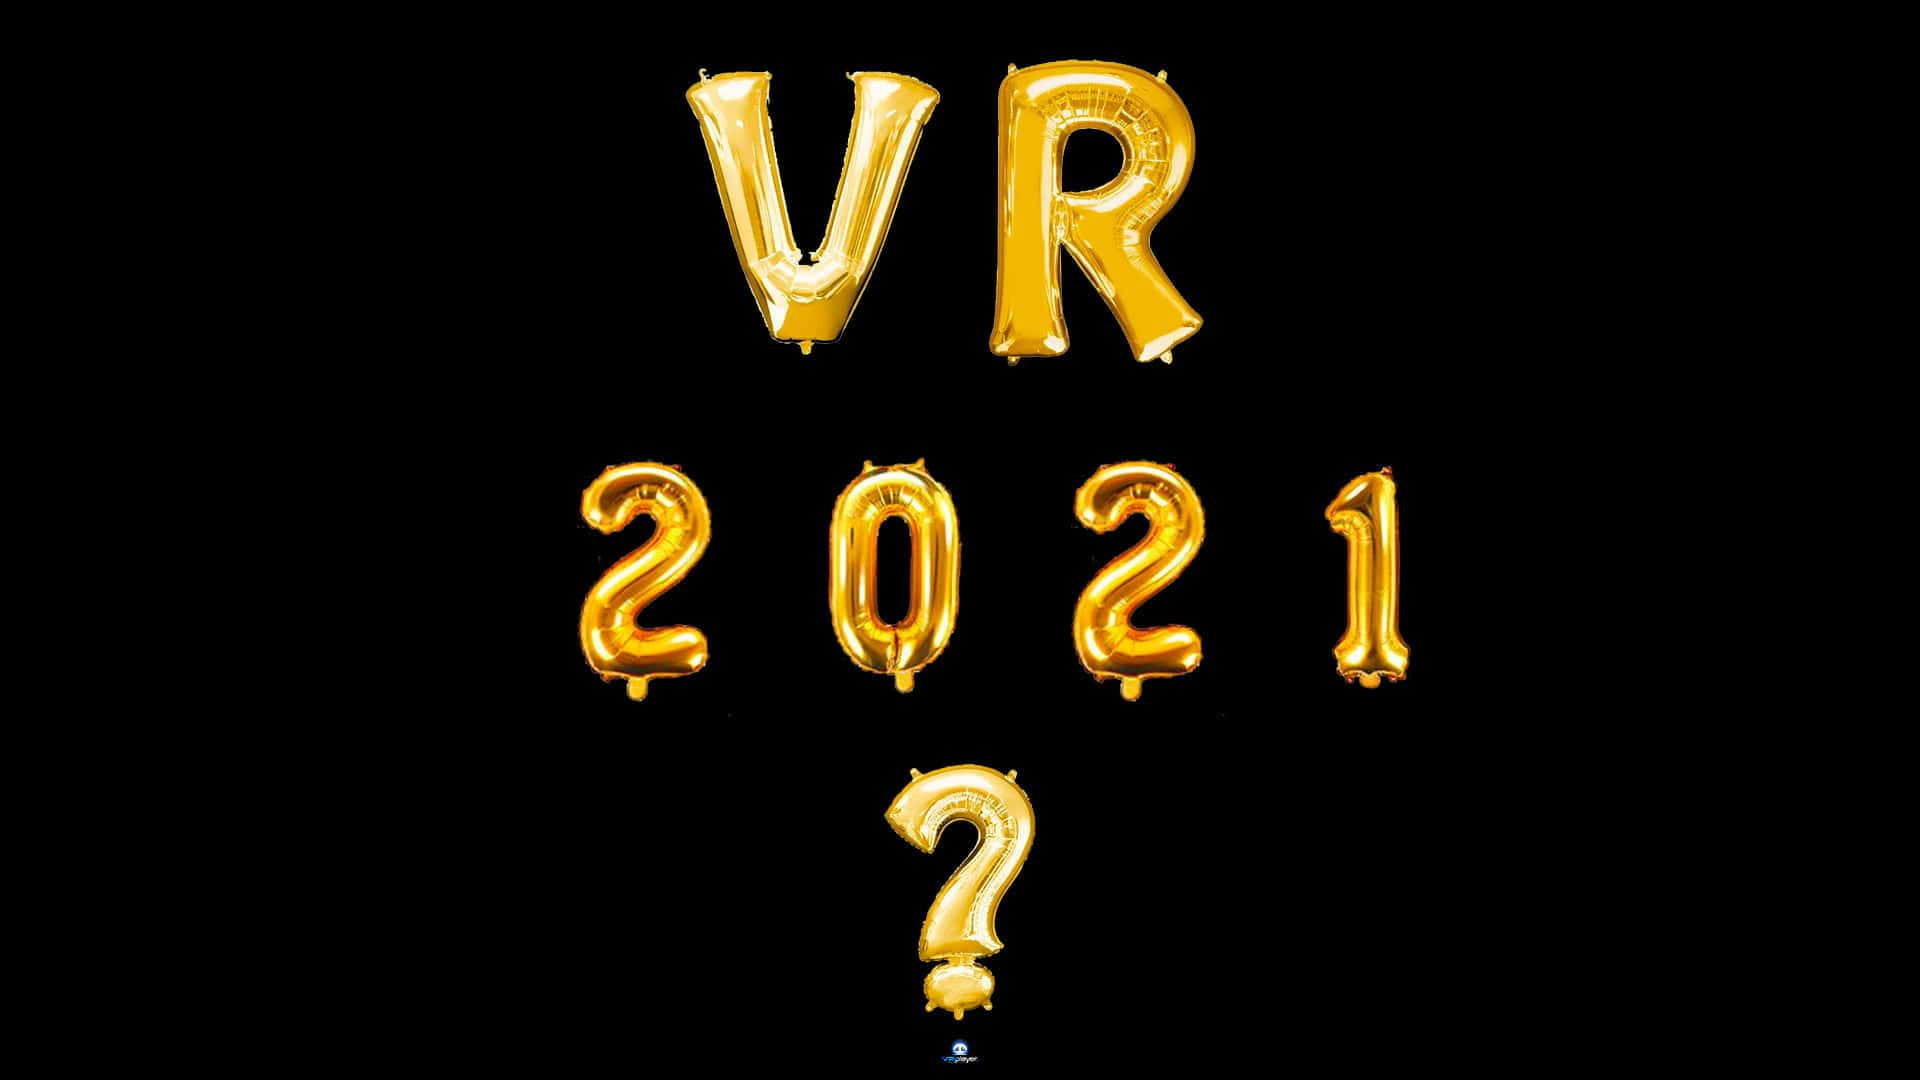 VR- Realite Virtuelle - 2021- voeux vr4player.fr